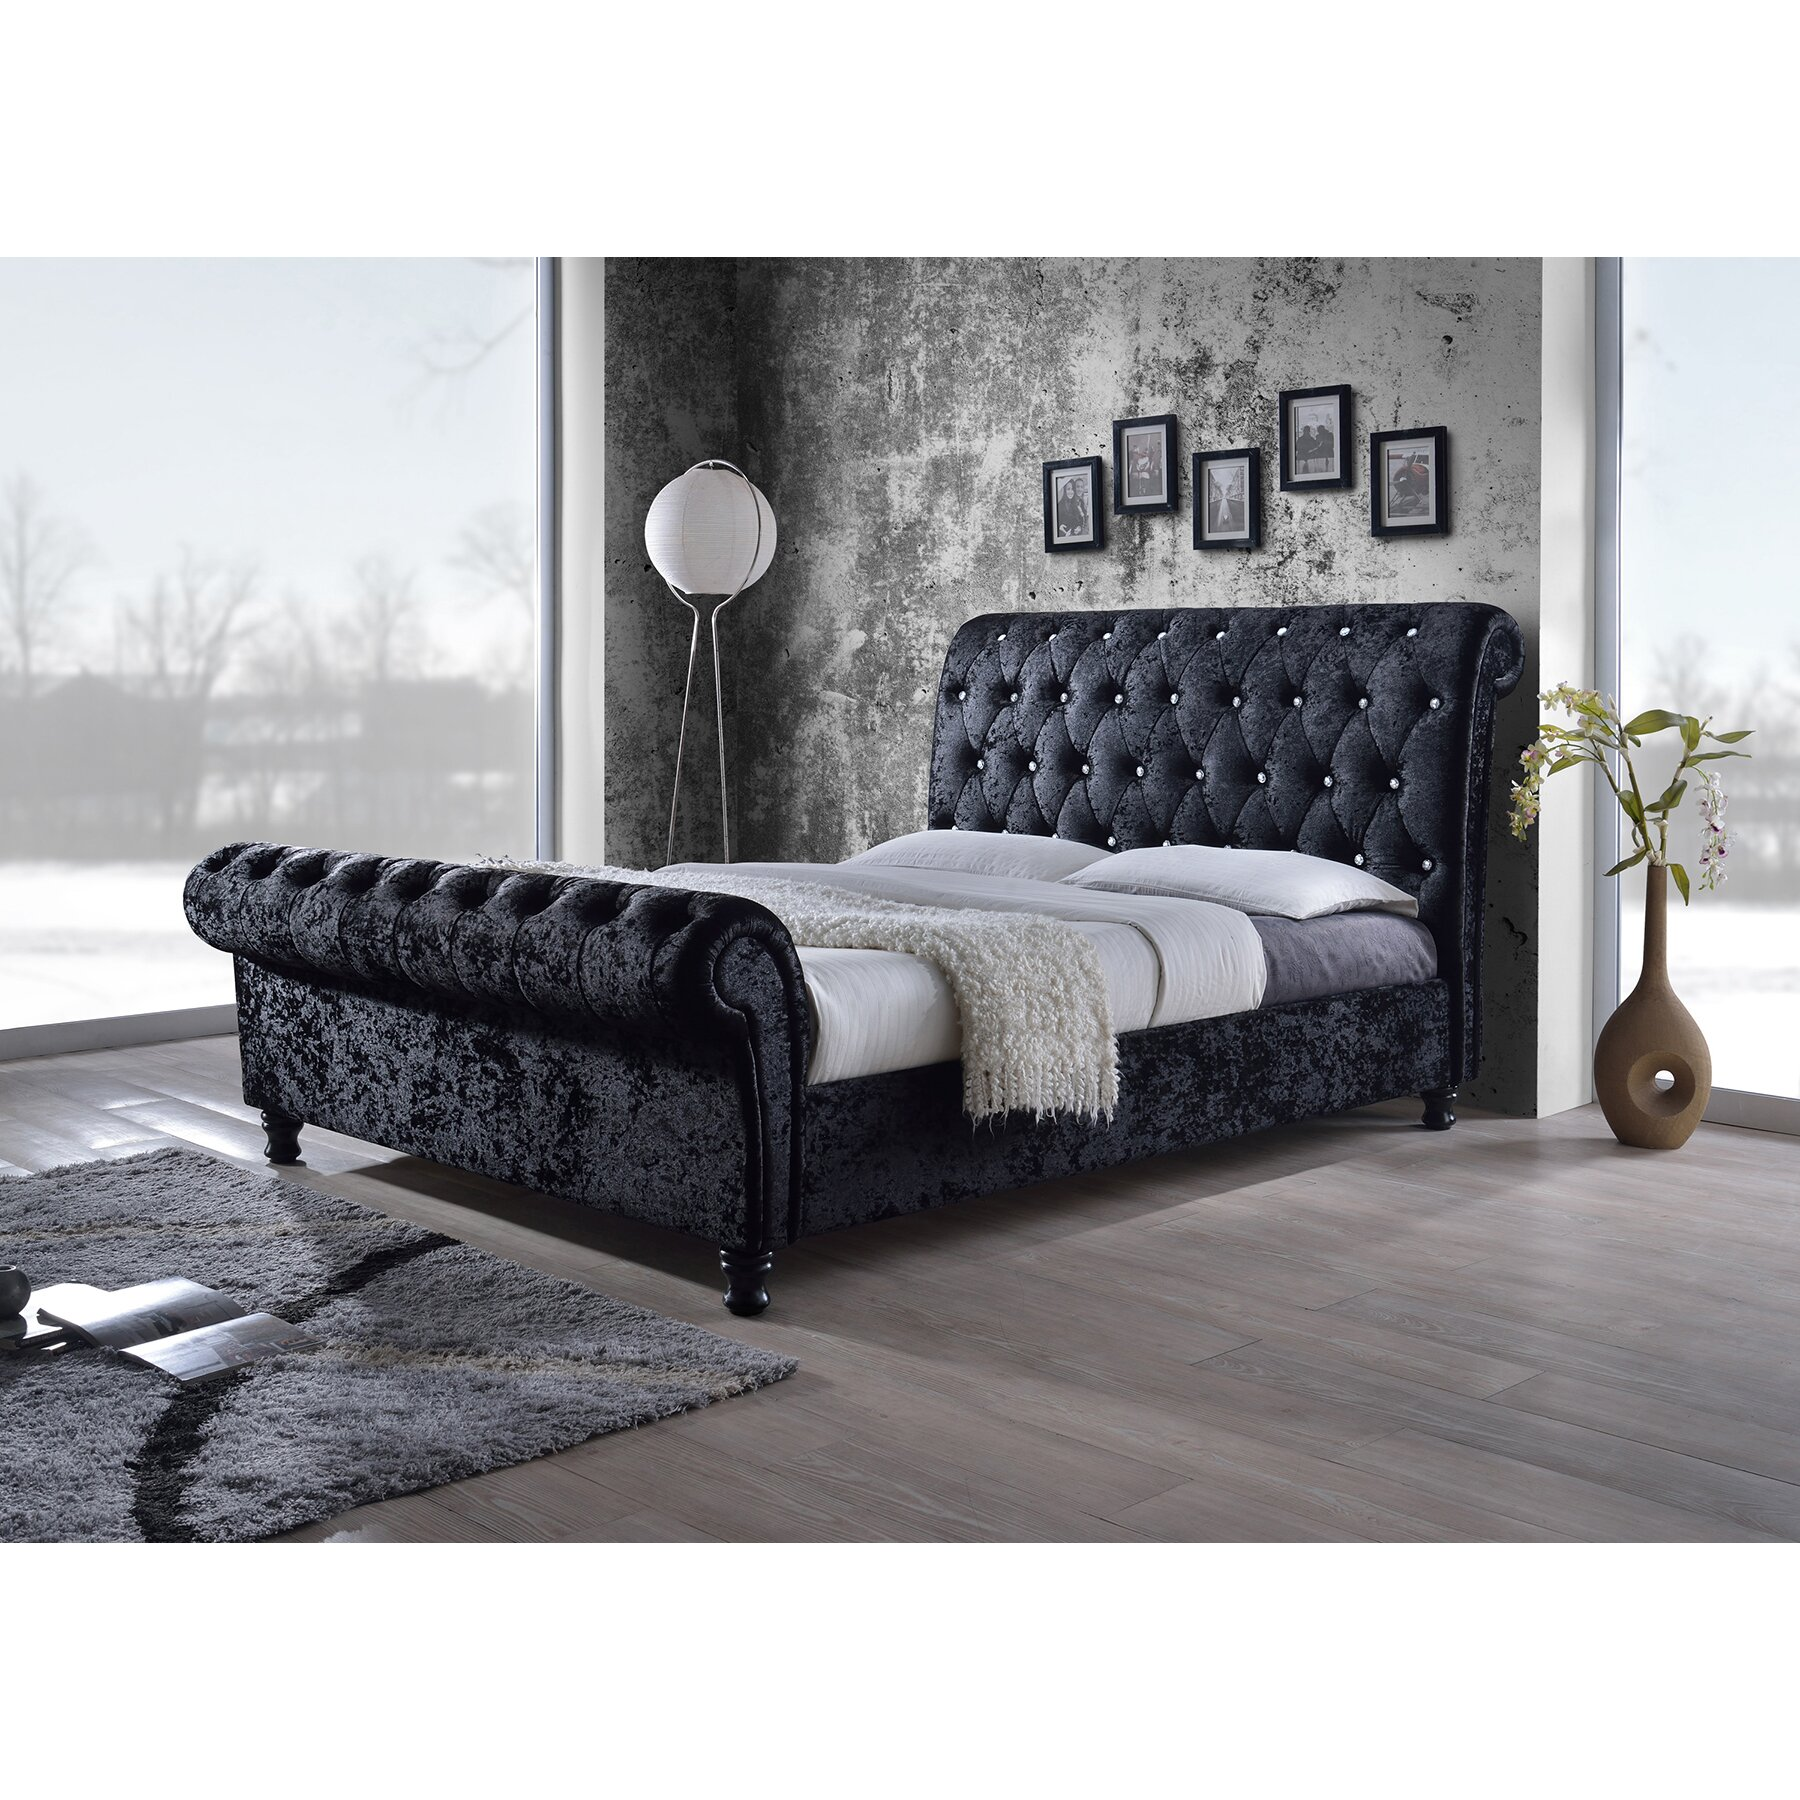 wholesale interiors baxton studio king upholstered sleigh bed reviews wayfair. Black Bedroom Furniture Sets. Home Design Ideas